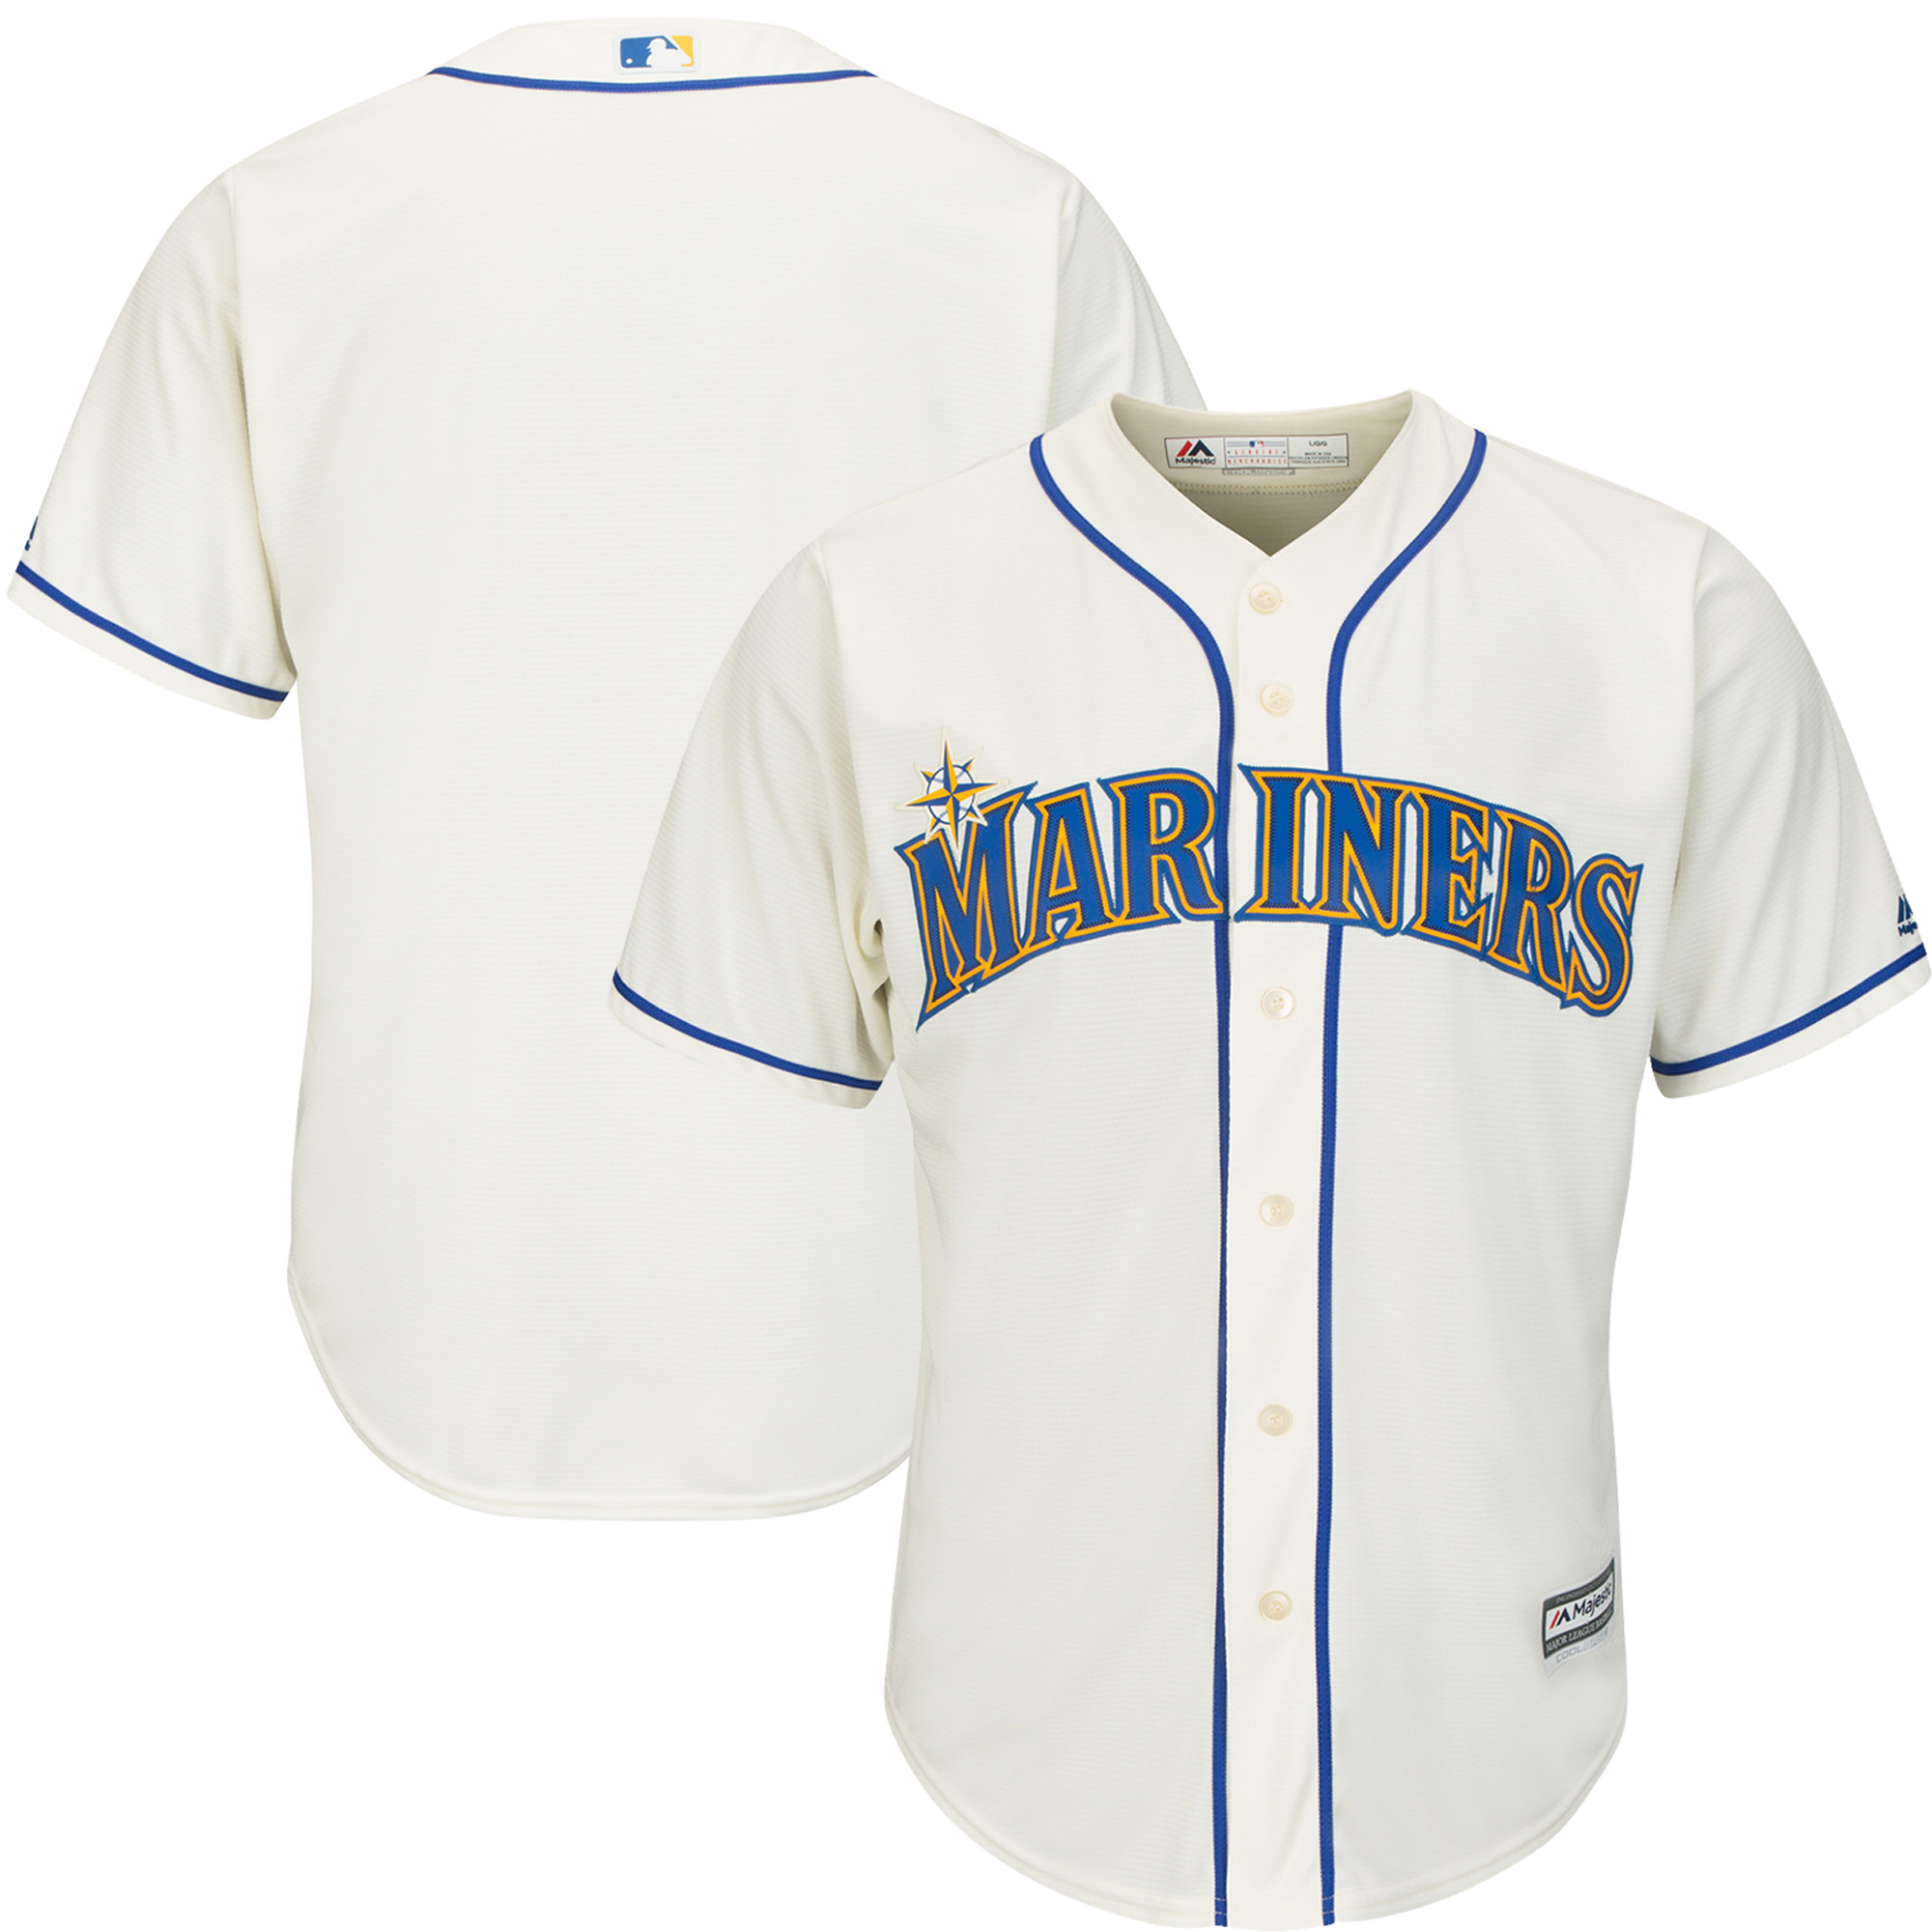 Seattle Mariners Majestic Official Cool Base Jersey - Cream